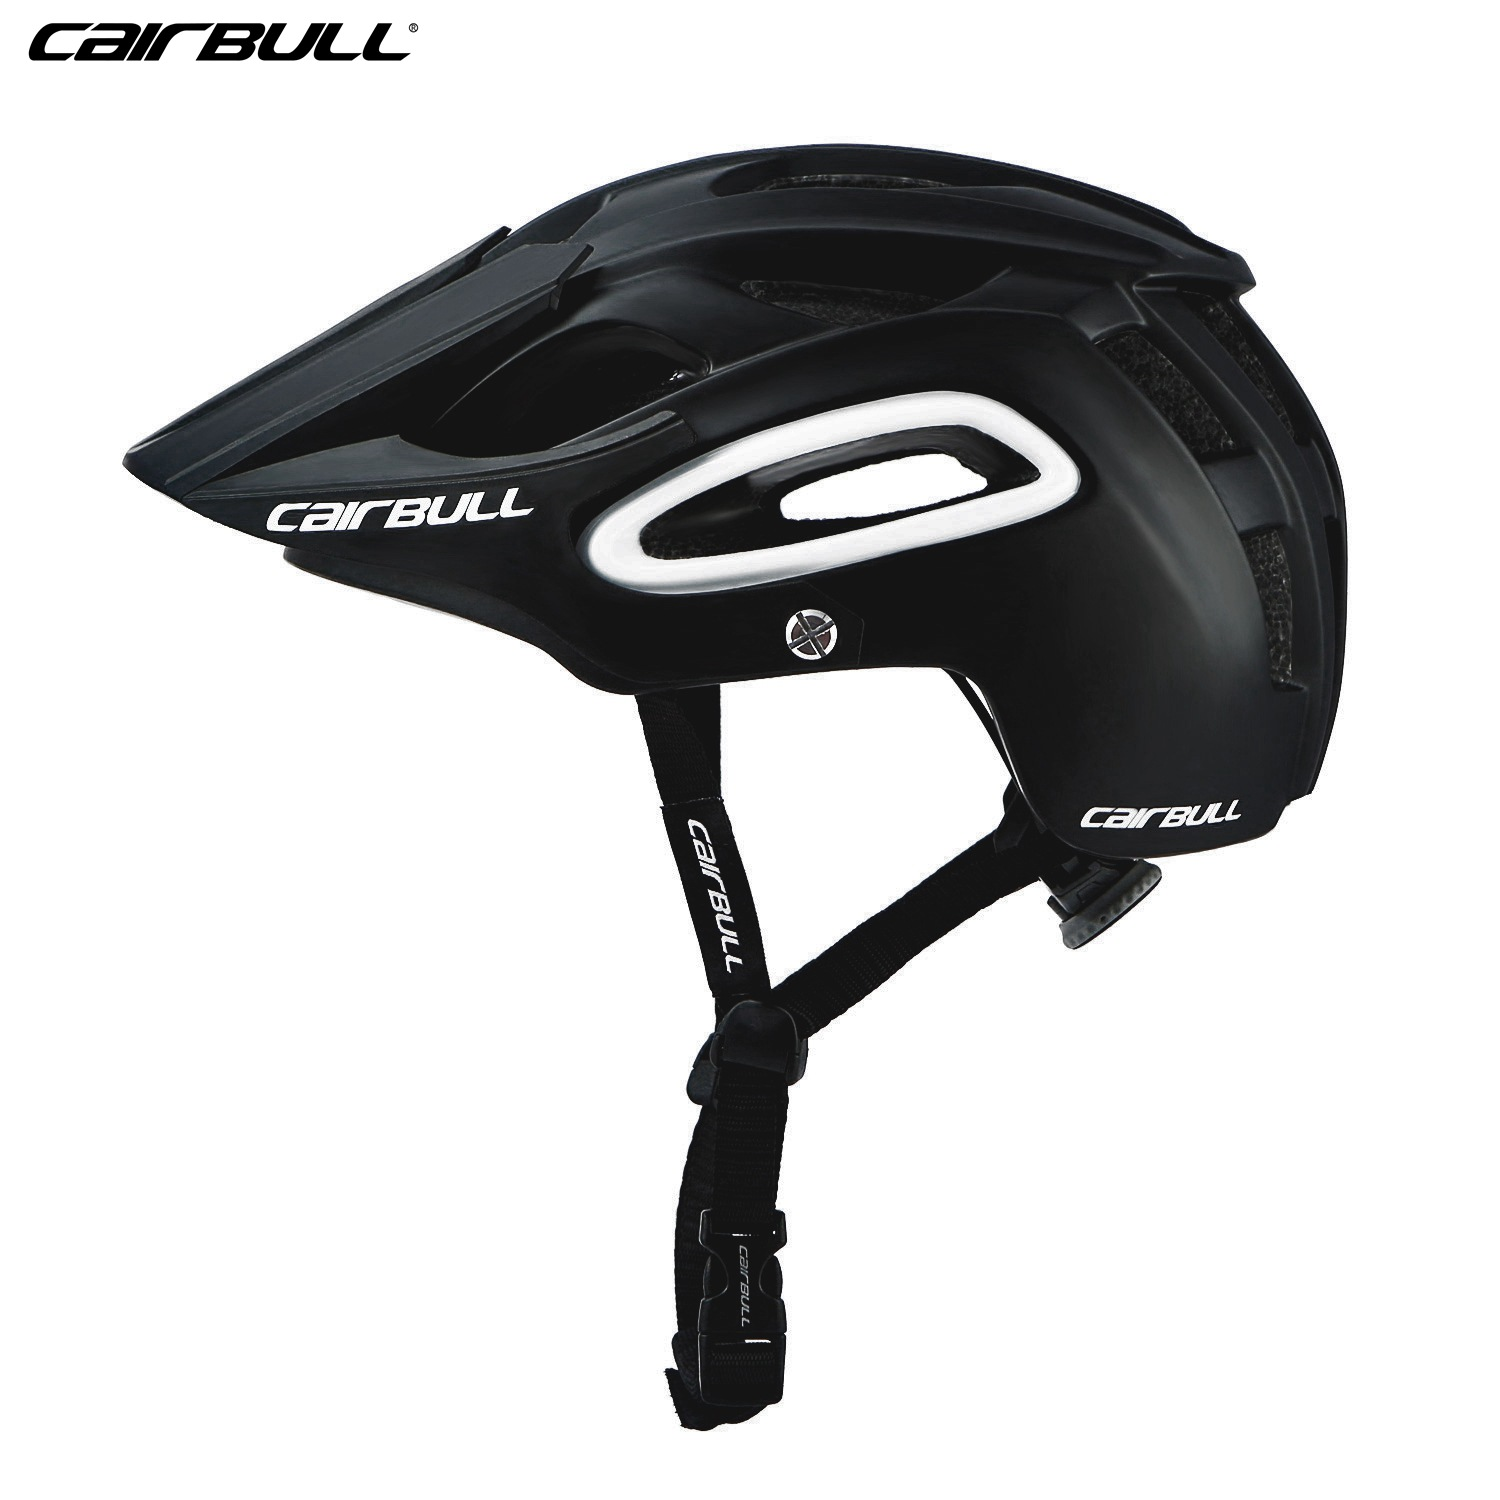 Shock-proof Bicycle Helmet Integrated Molding Breathable Cycling Helmet for Man Woman black_M (54-58CM)